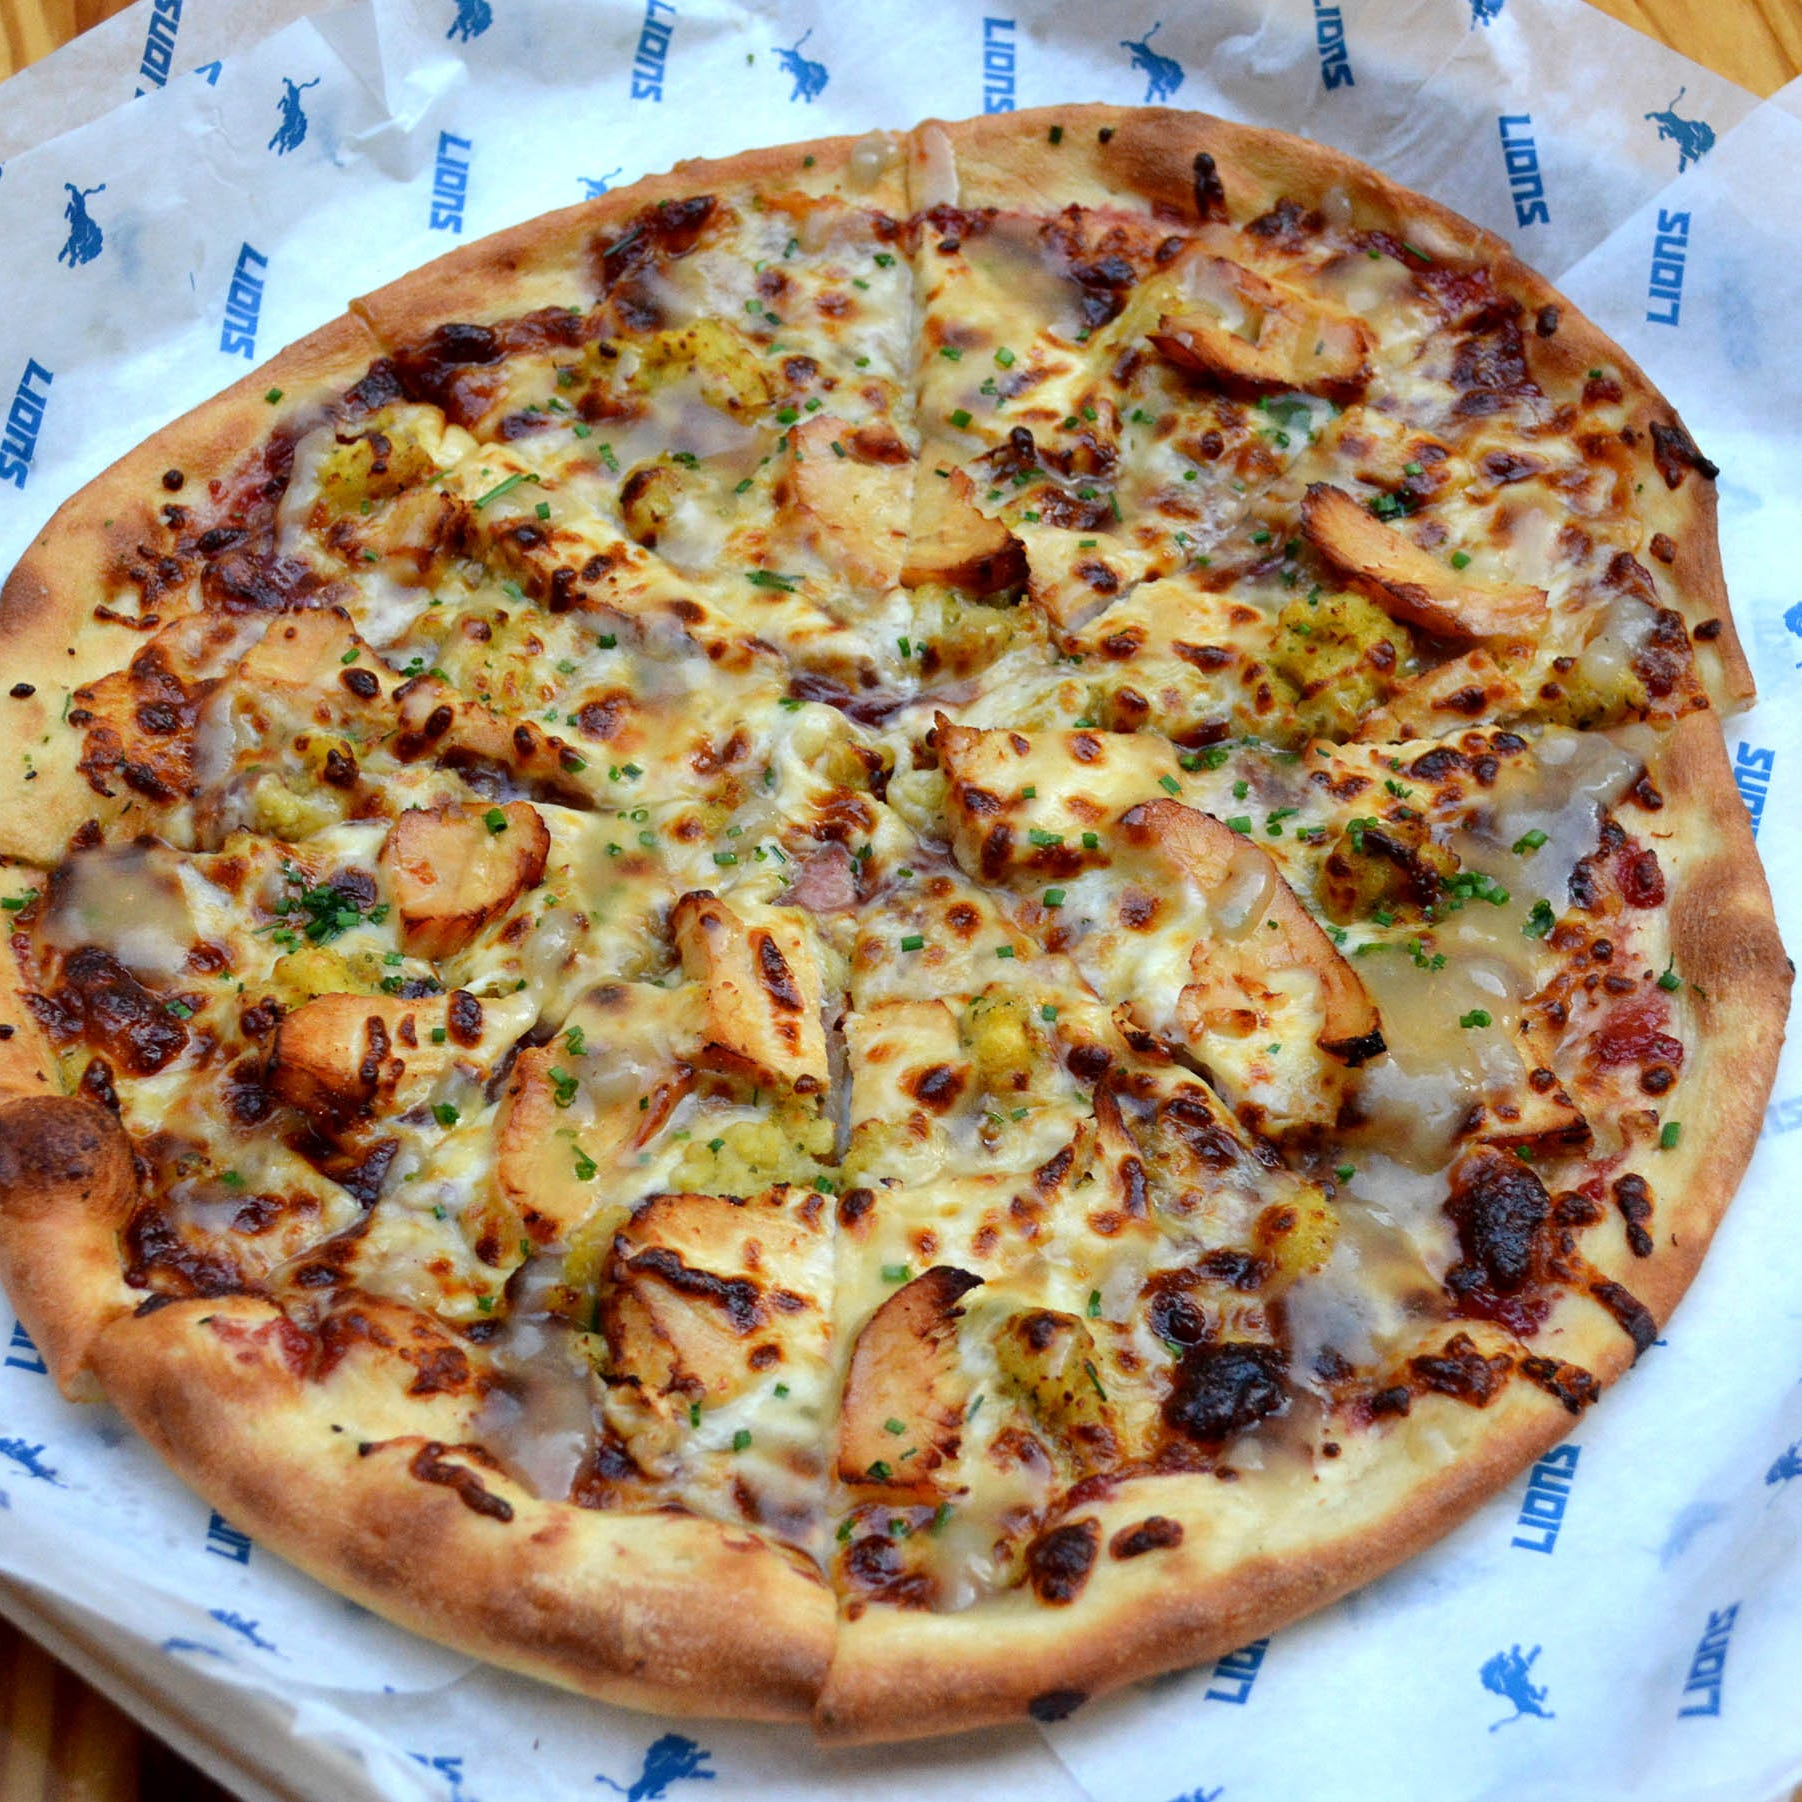 Ford Field to serve Thanksgiving pizza during Detroit Lions game